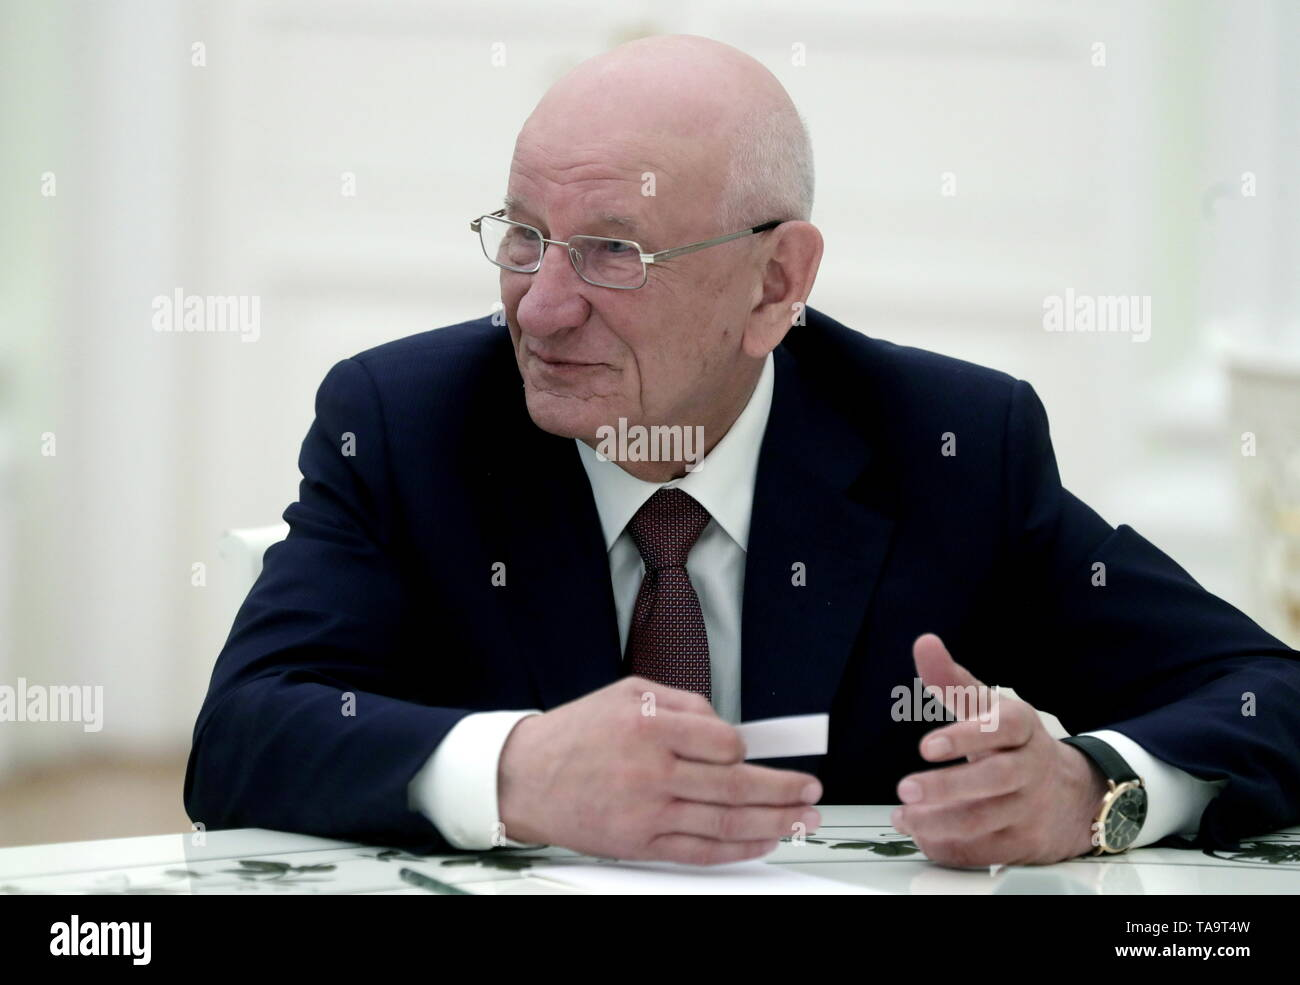 Moscow, Russia. 23rd May, 2019. MOSCOW, RUSSIA - MAY 23, 2019: Former Orenburg Region Governor Yuri Berg during a meeting of Russia's President Vladimir Putin with former heads of Russian regions, at the Moscow Kremlin. Mikhail Metzel/TASS Credit: ITAR-TASS News Agency/Alamy Live News - Stock Image